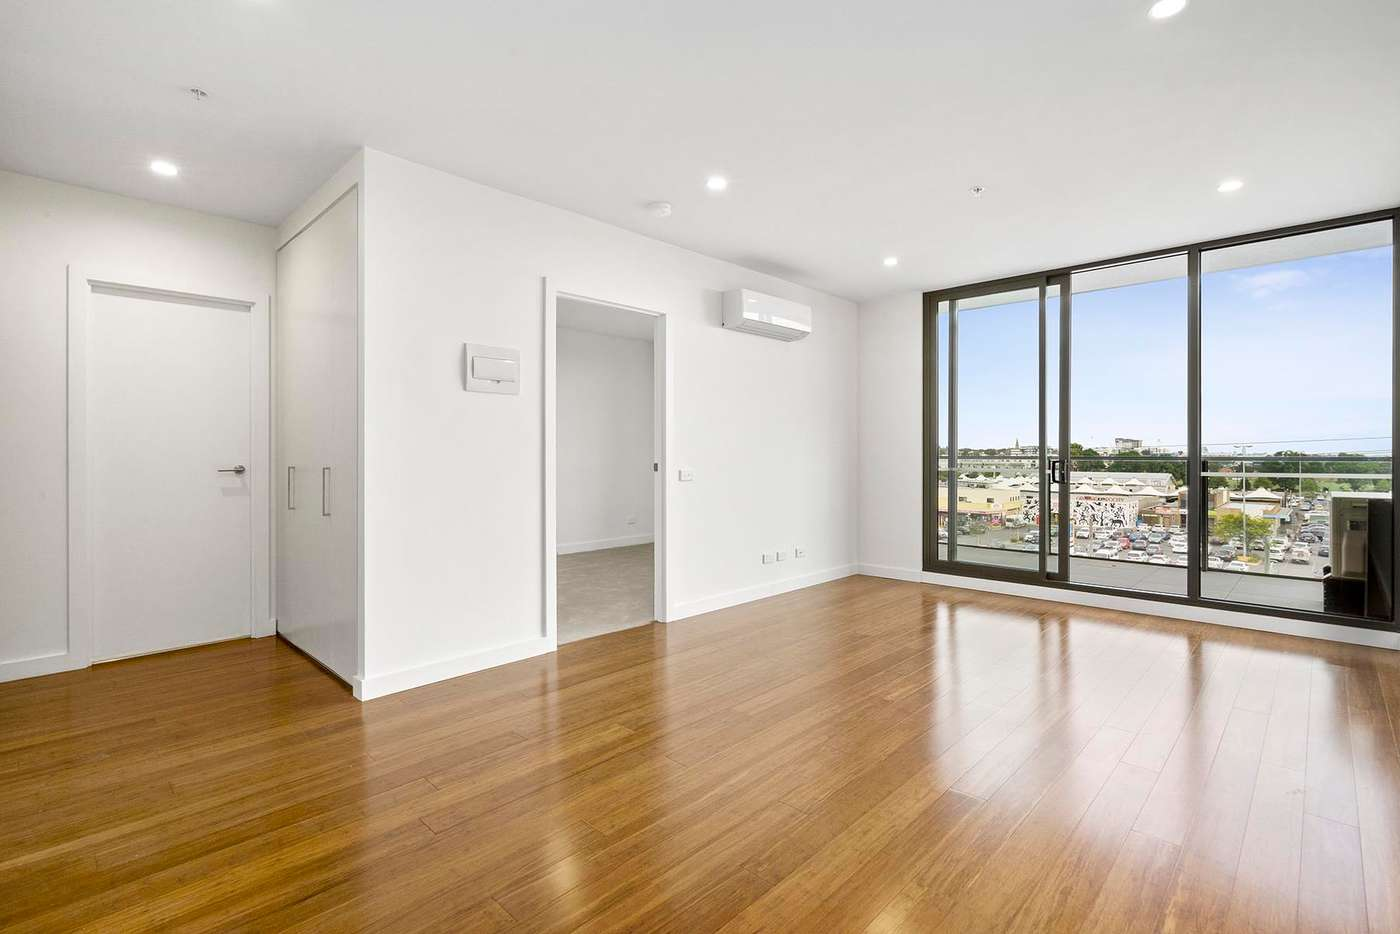 Main view of Homely apartment listing, 110A/6 Clinch Avenue, Preston VIC 3072